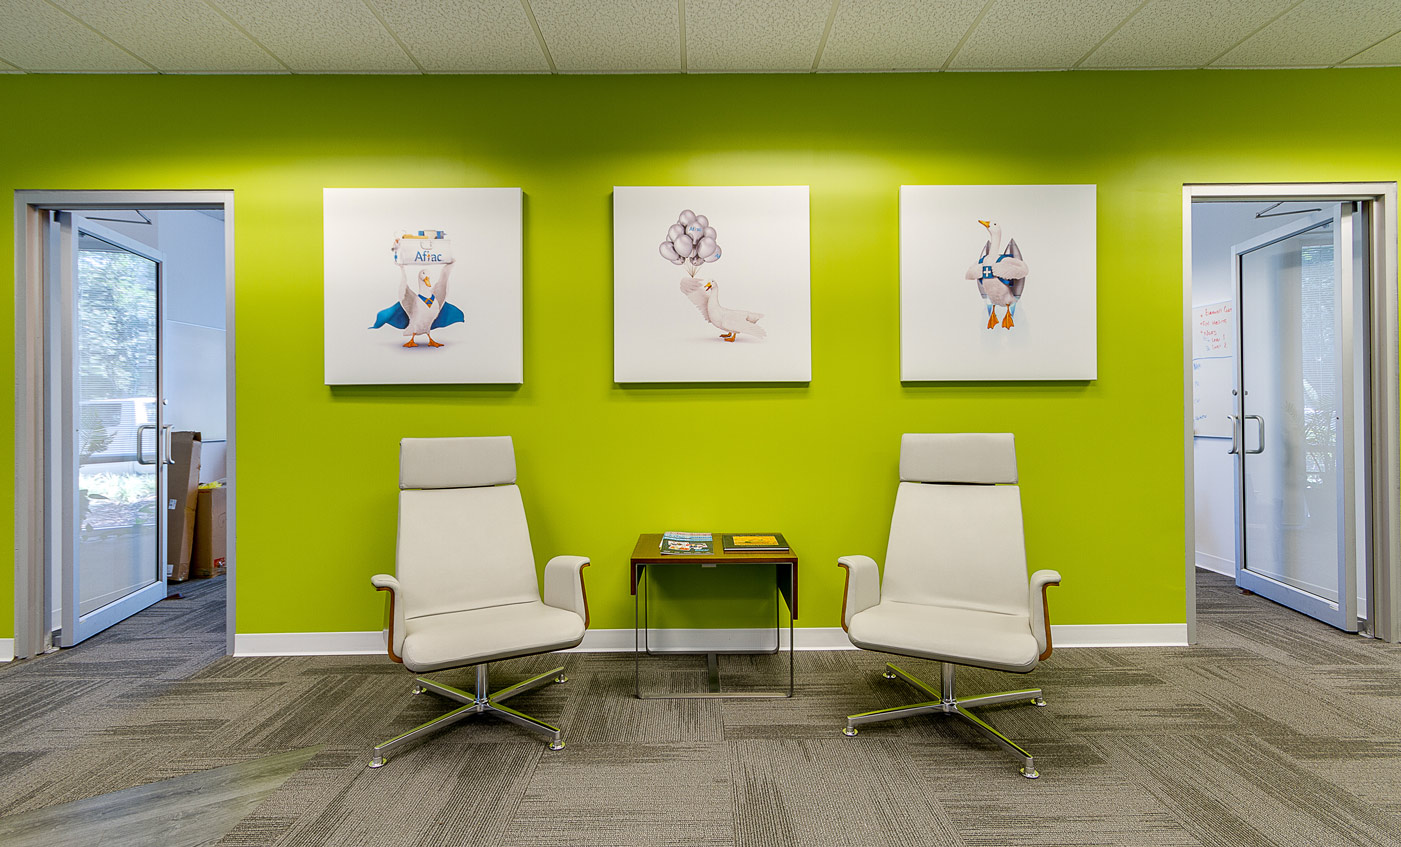 Aflac seating area with three pictures